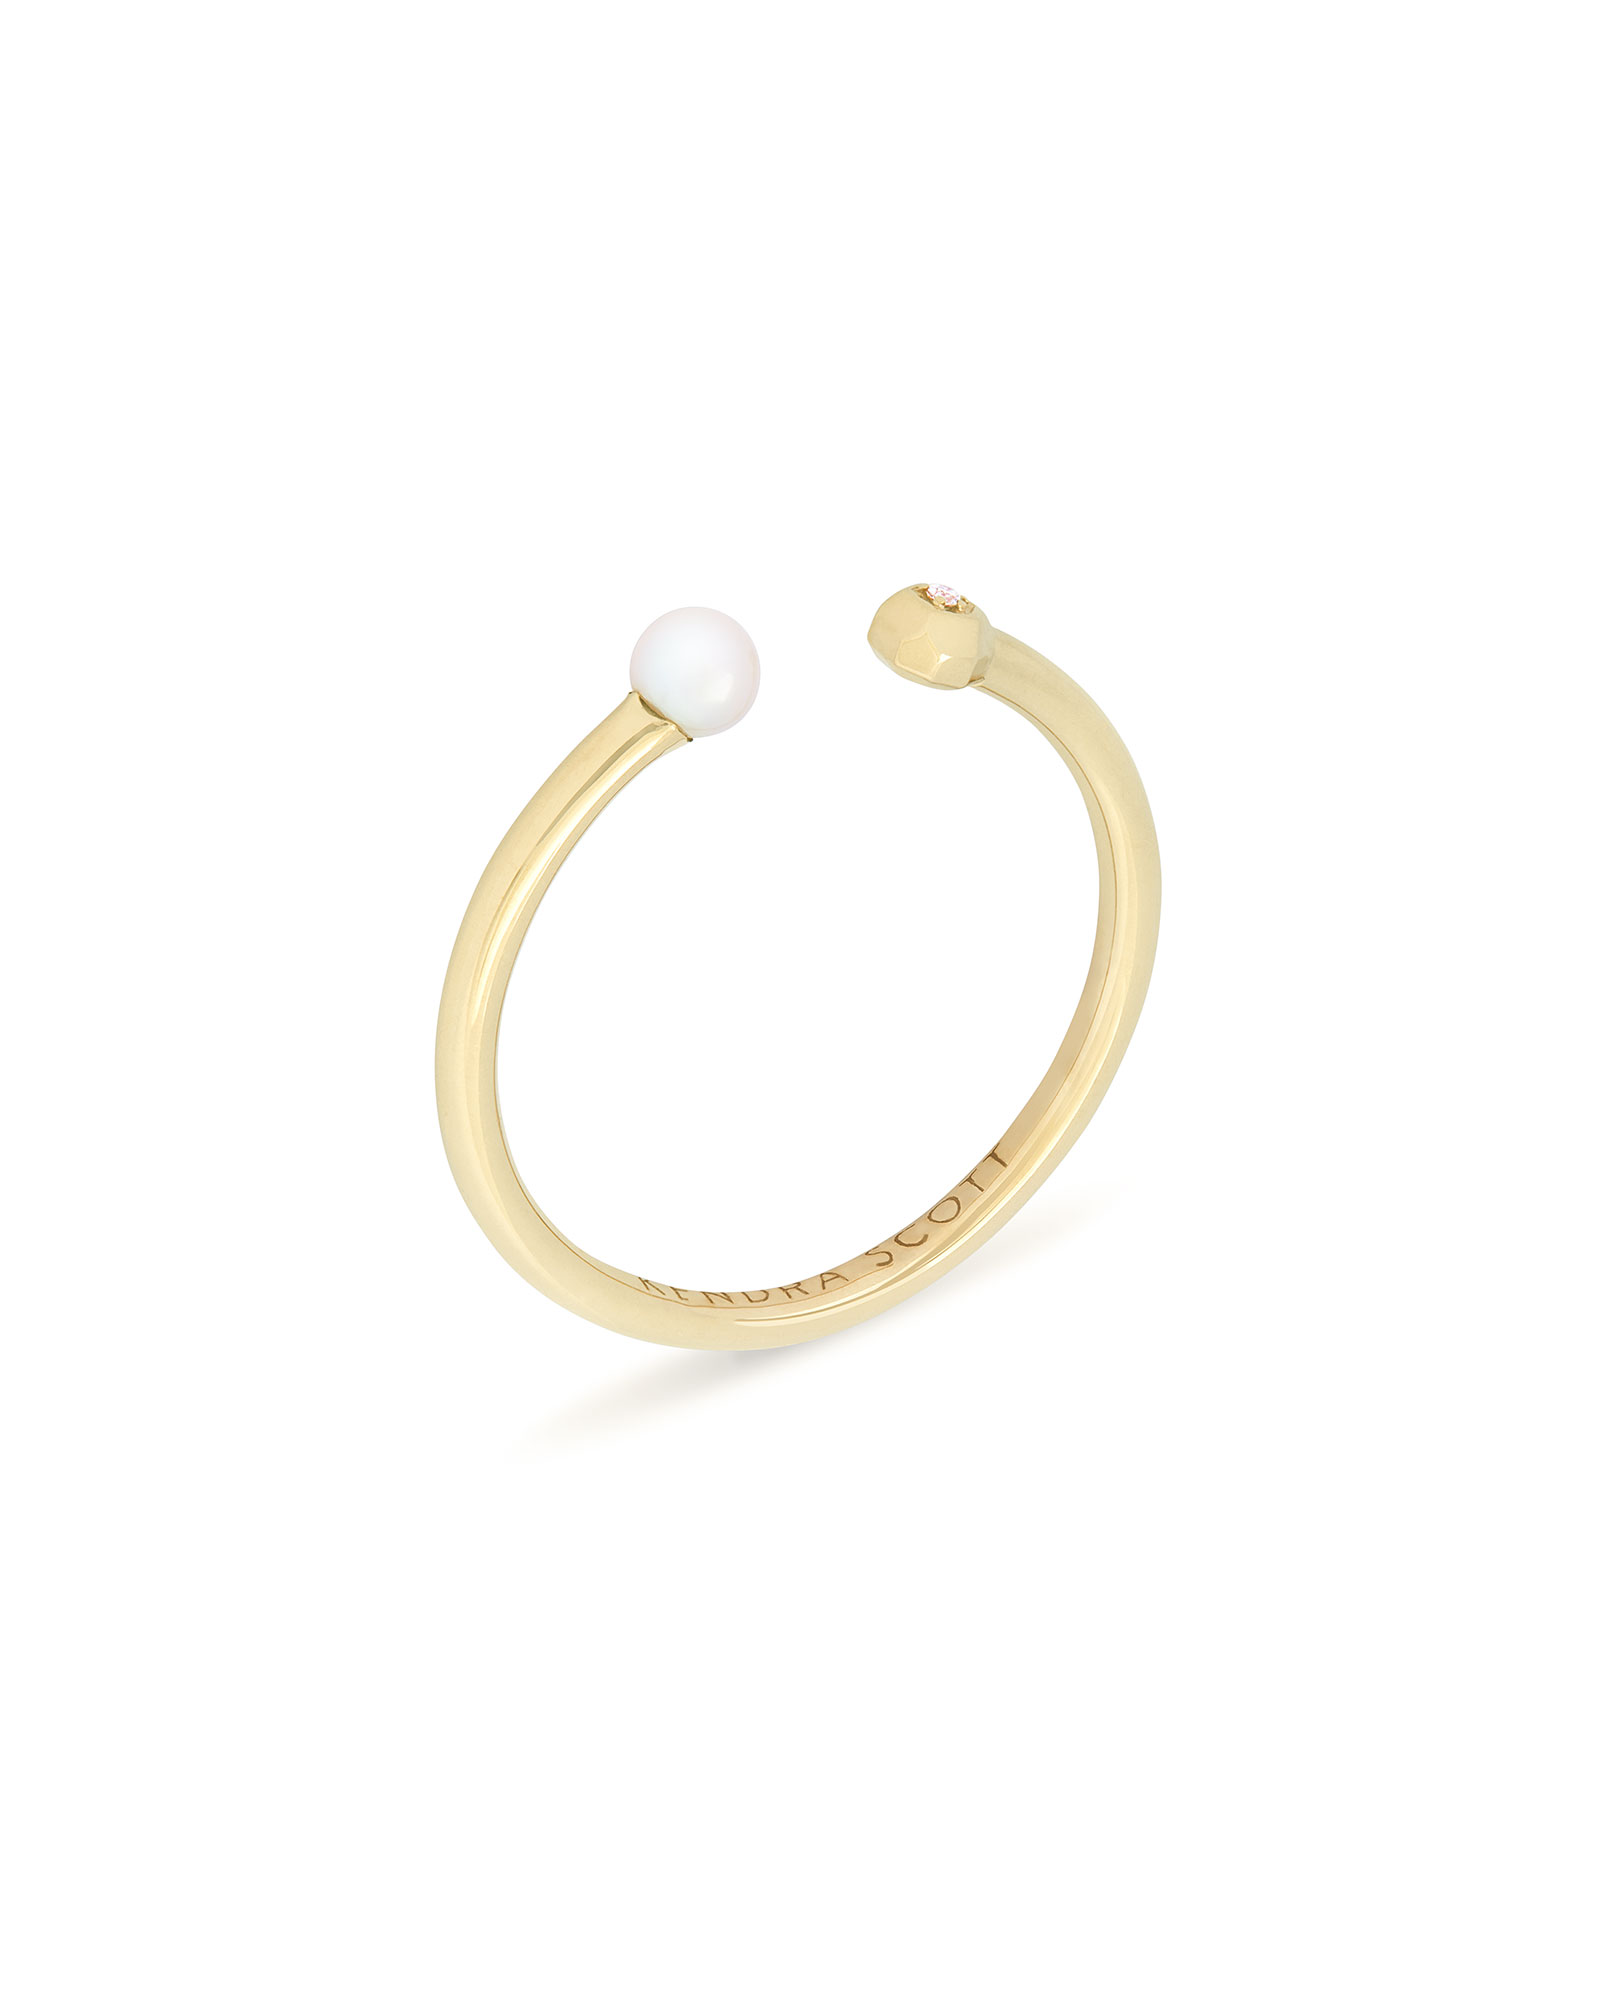 Cathleen 14k Yellow Gold Open Midi Ring in Pearl - 3